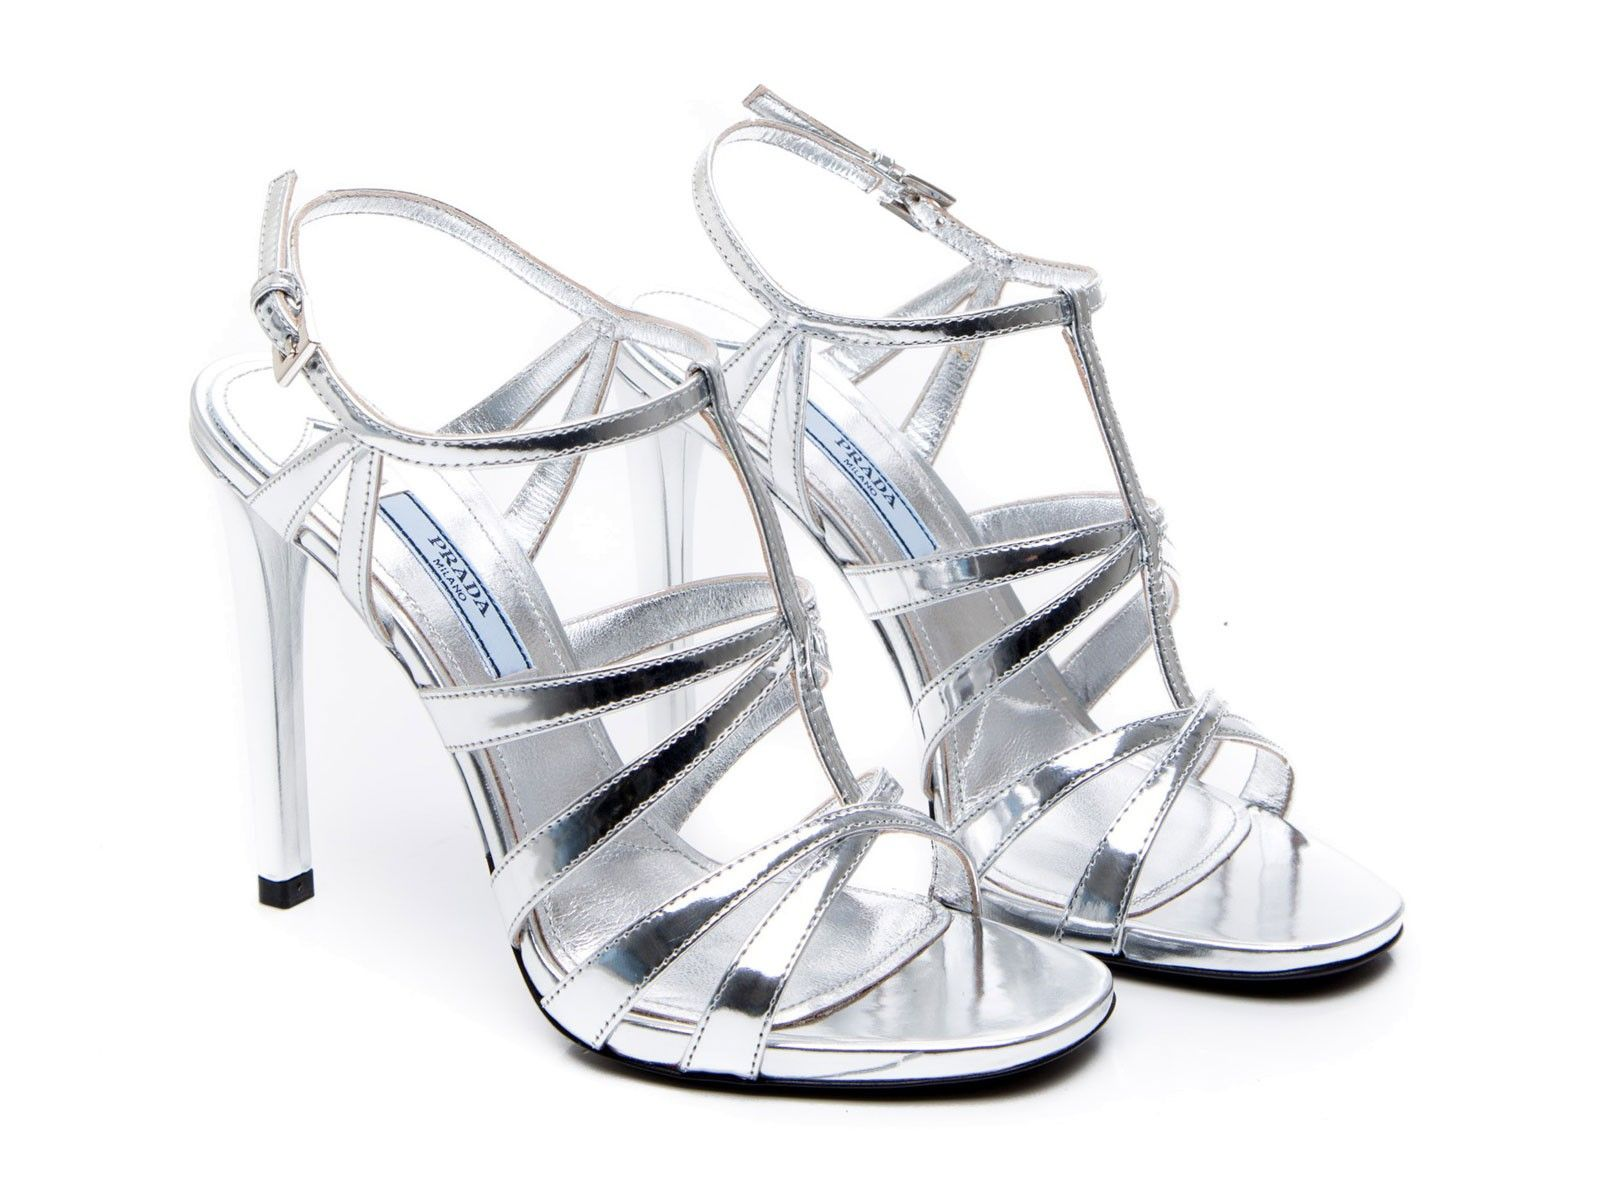 Silver High Heels For Kids FAHiX5